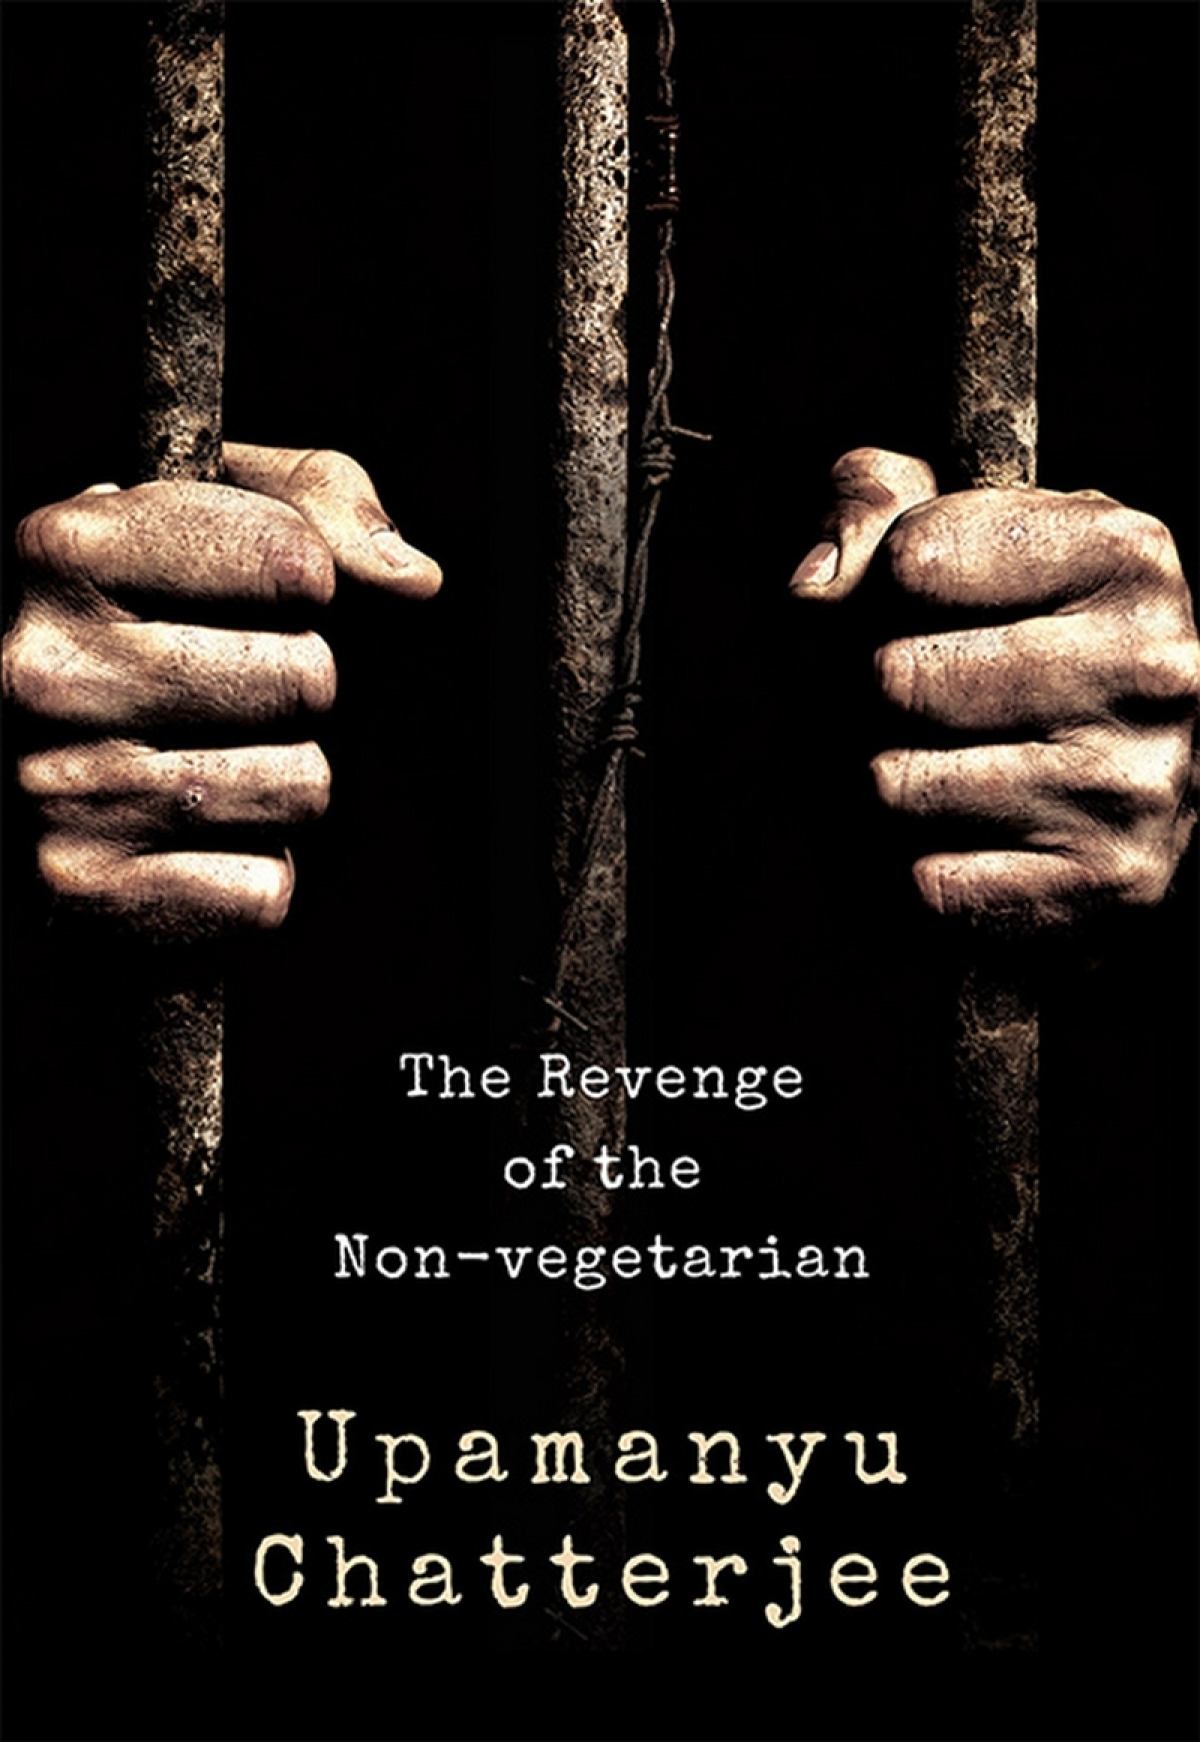 The Revenge of the Non-Vegetarian by Upamanyu Chatterjee: Review